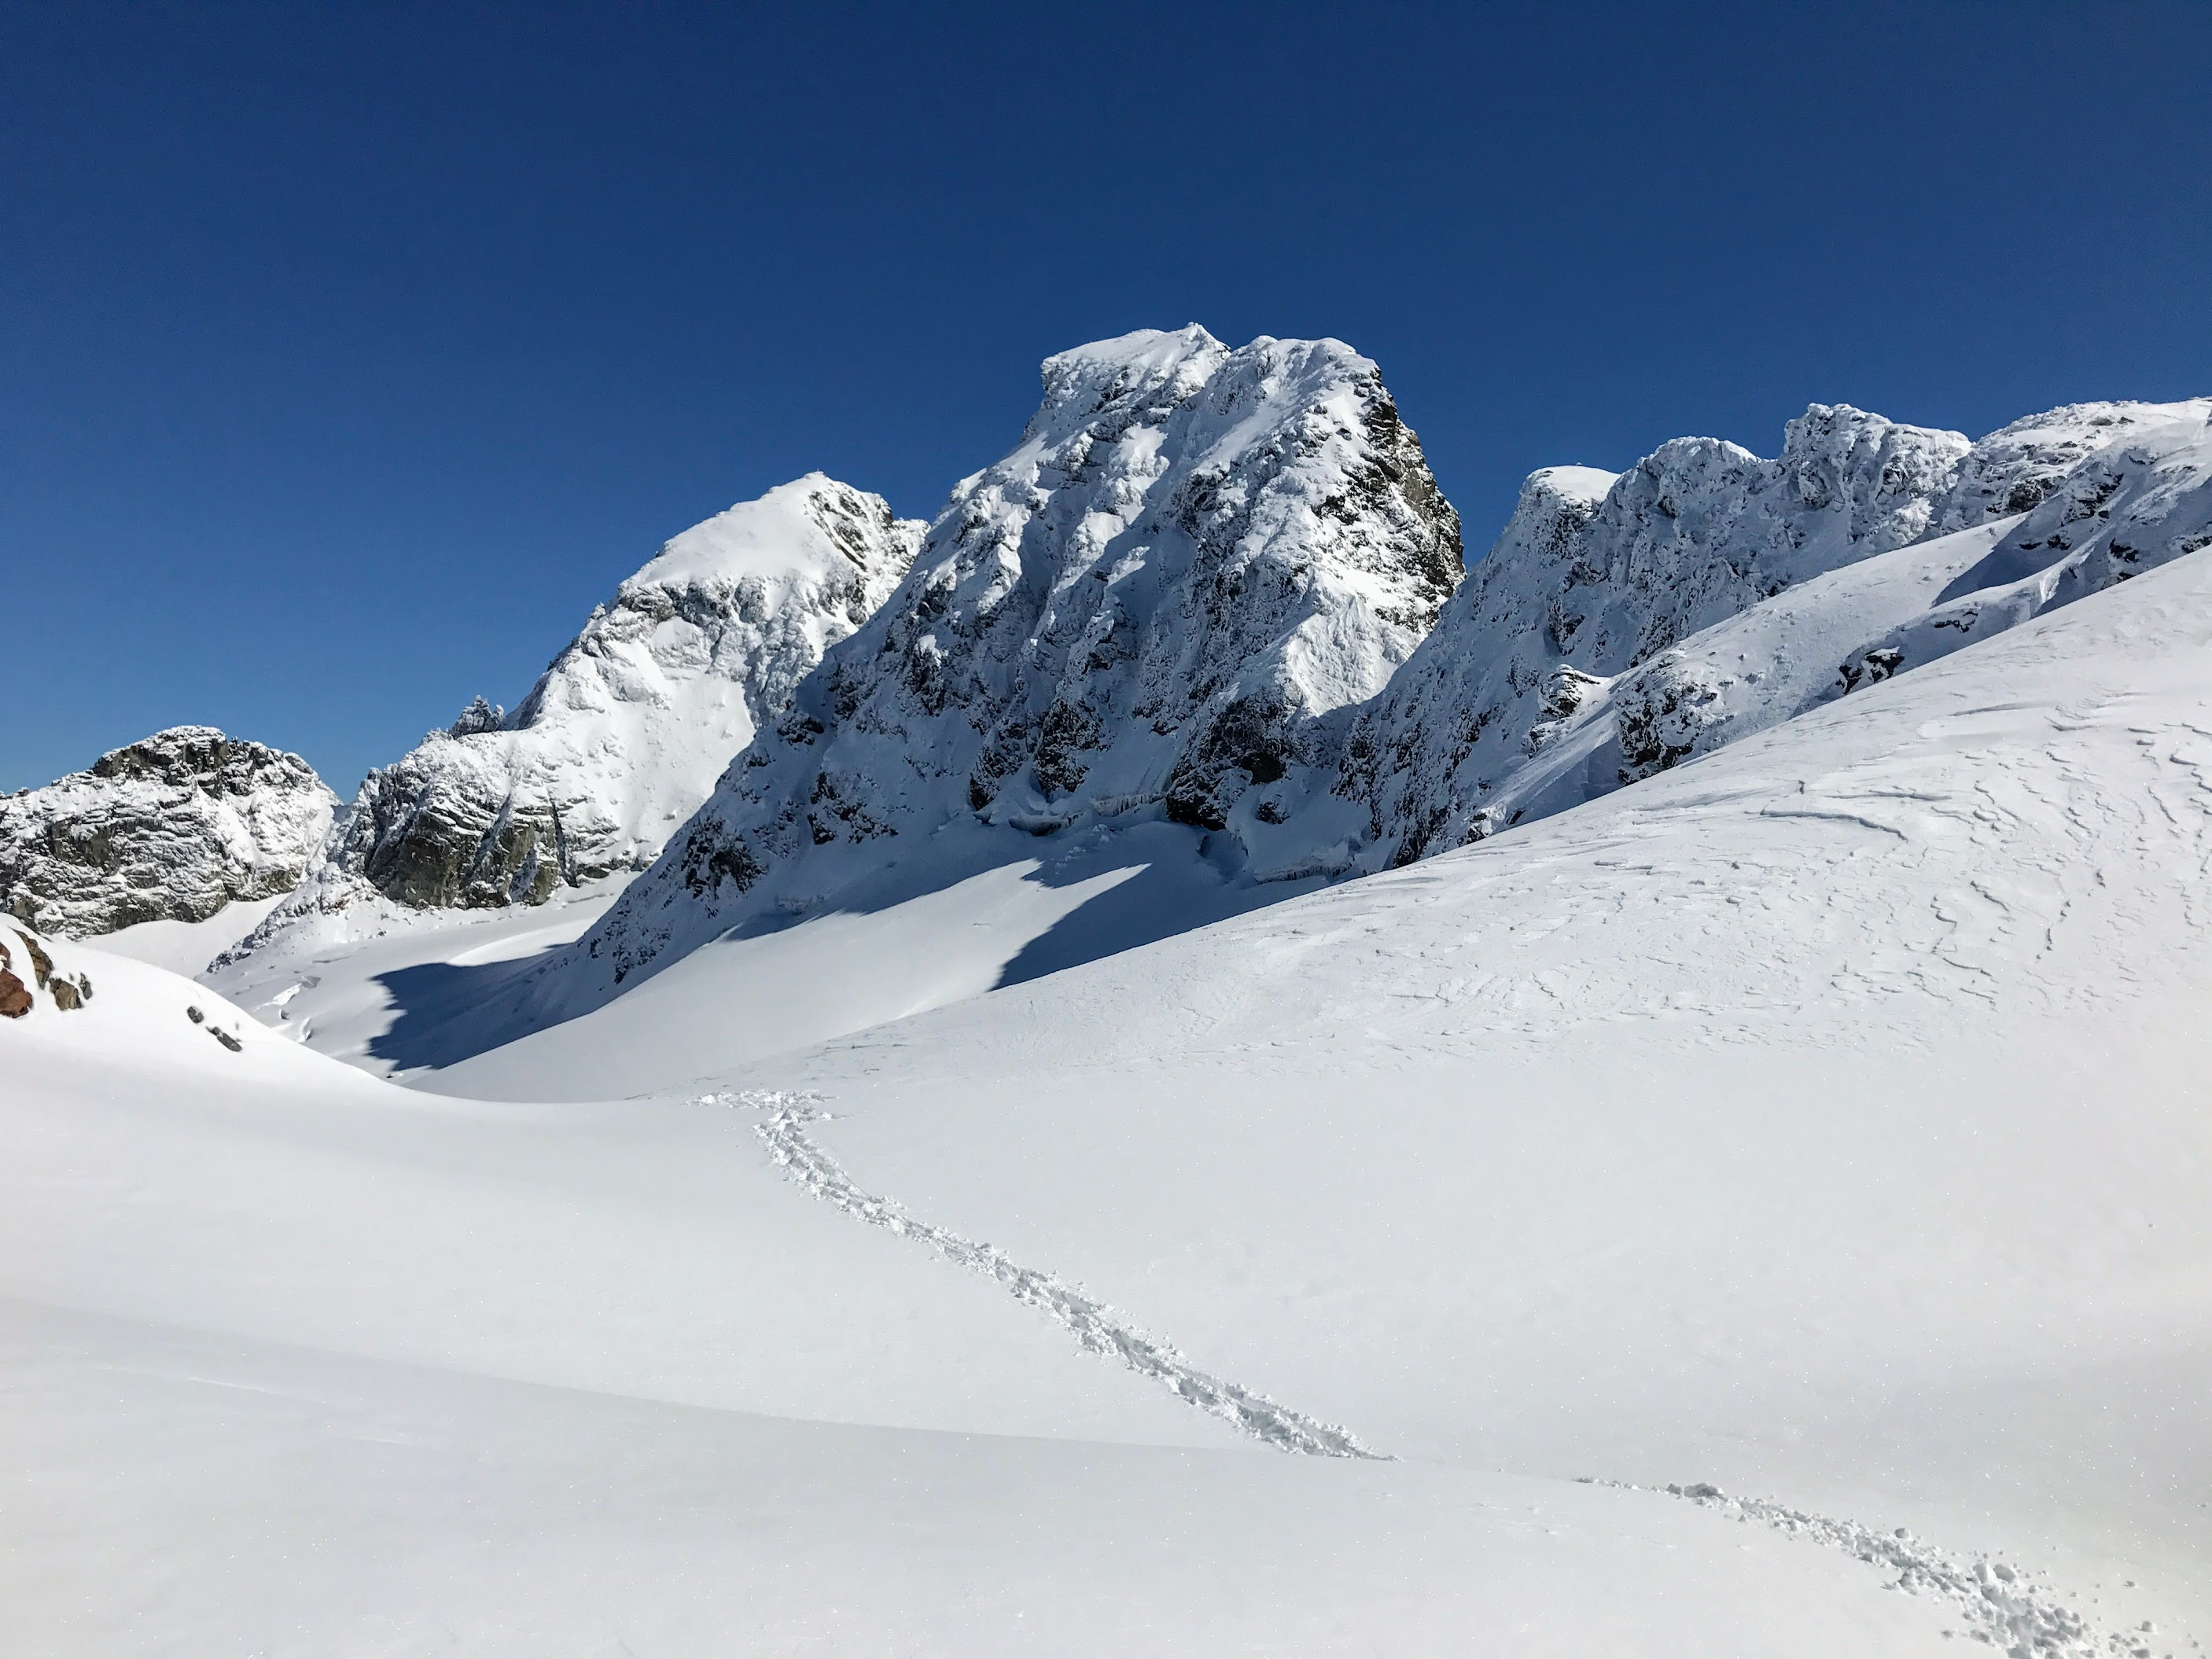 Piz Buin from Fuorcla dal Canfin